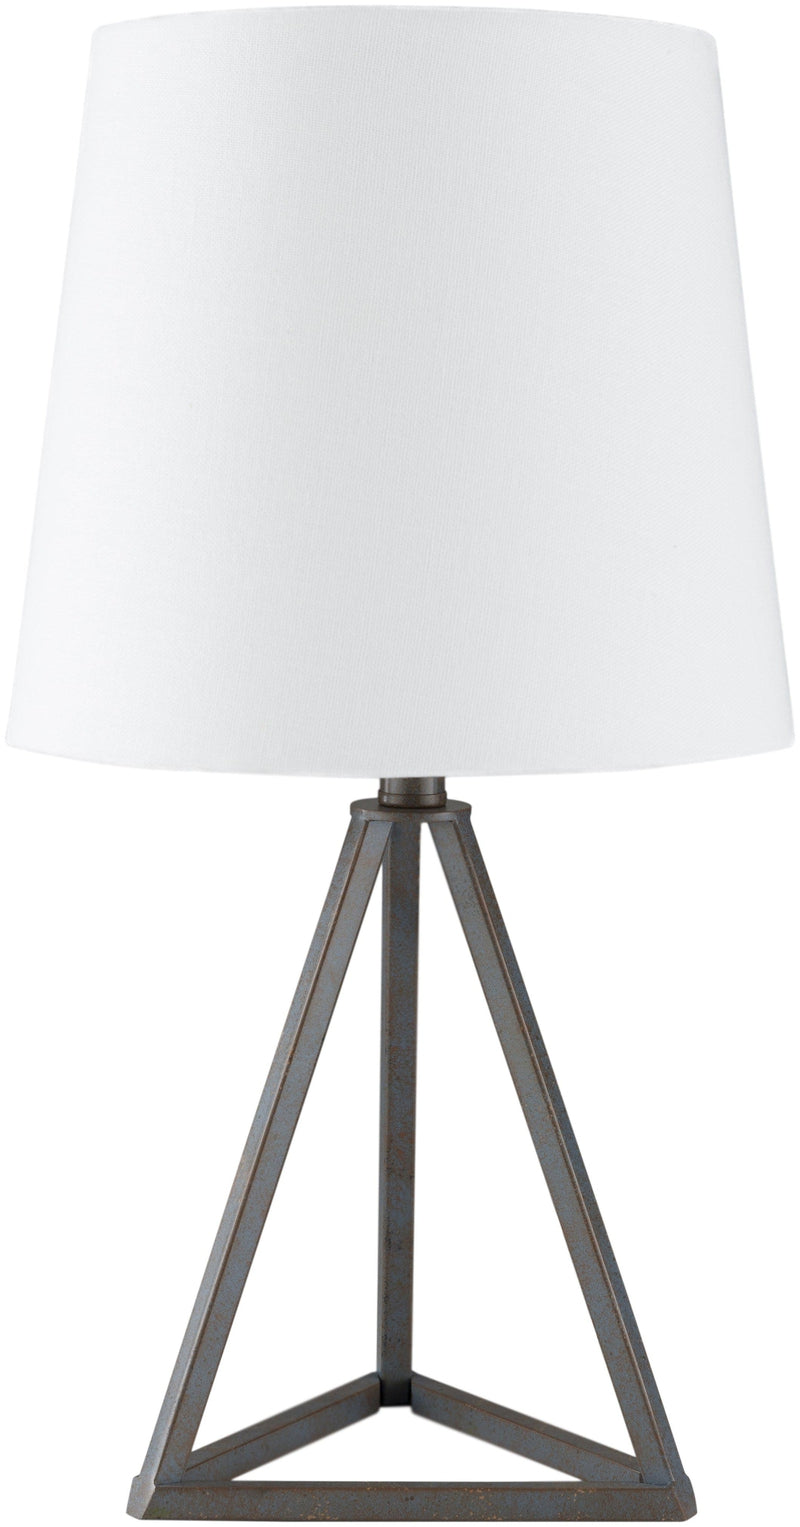 Modling Modern White Table Lamp